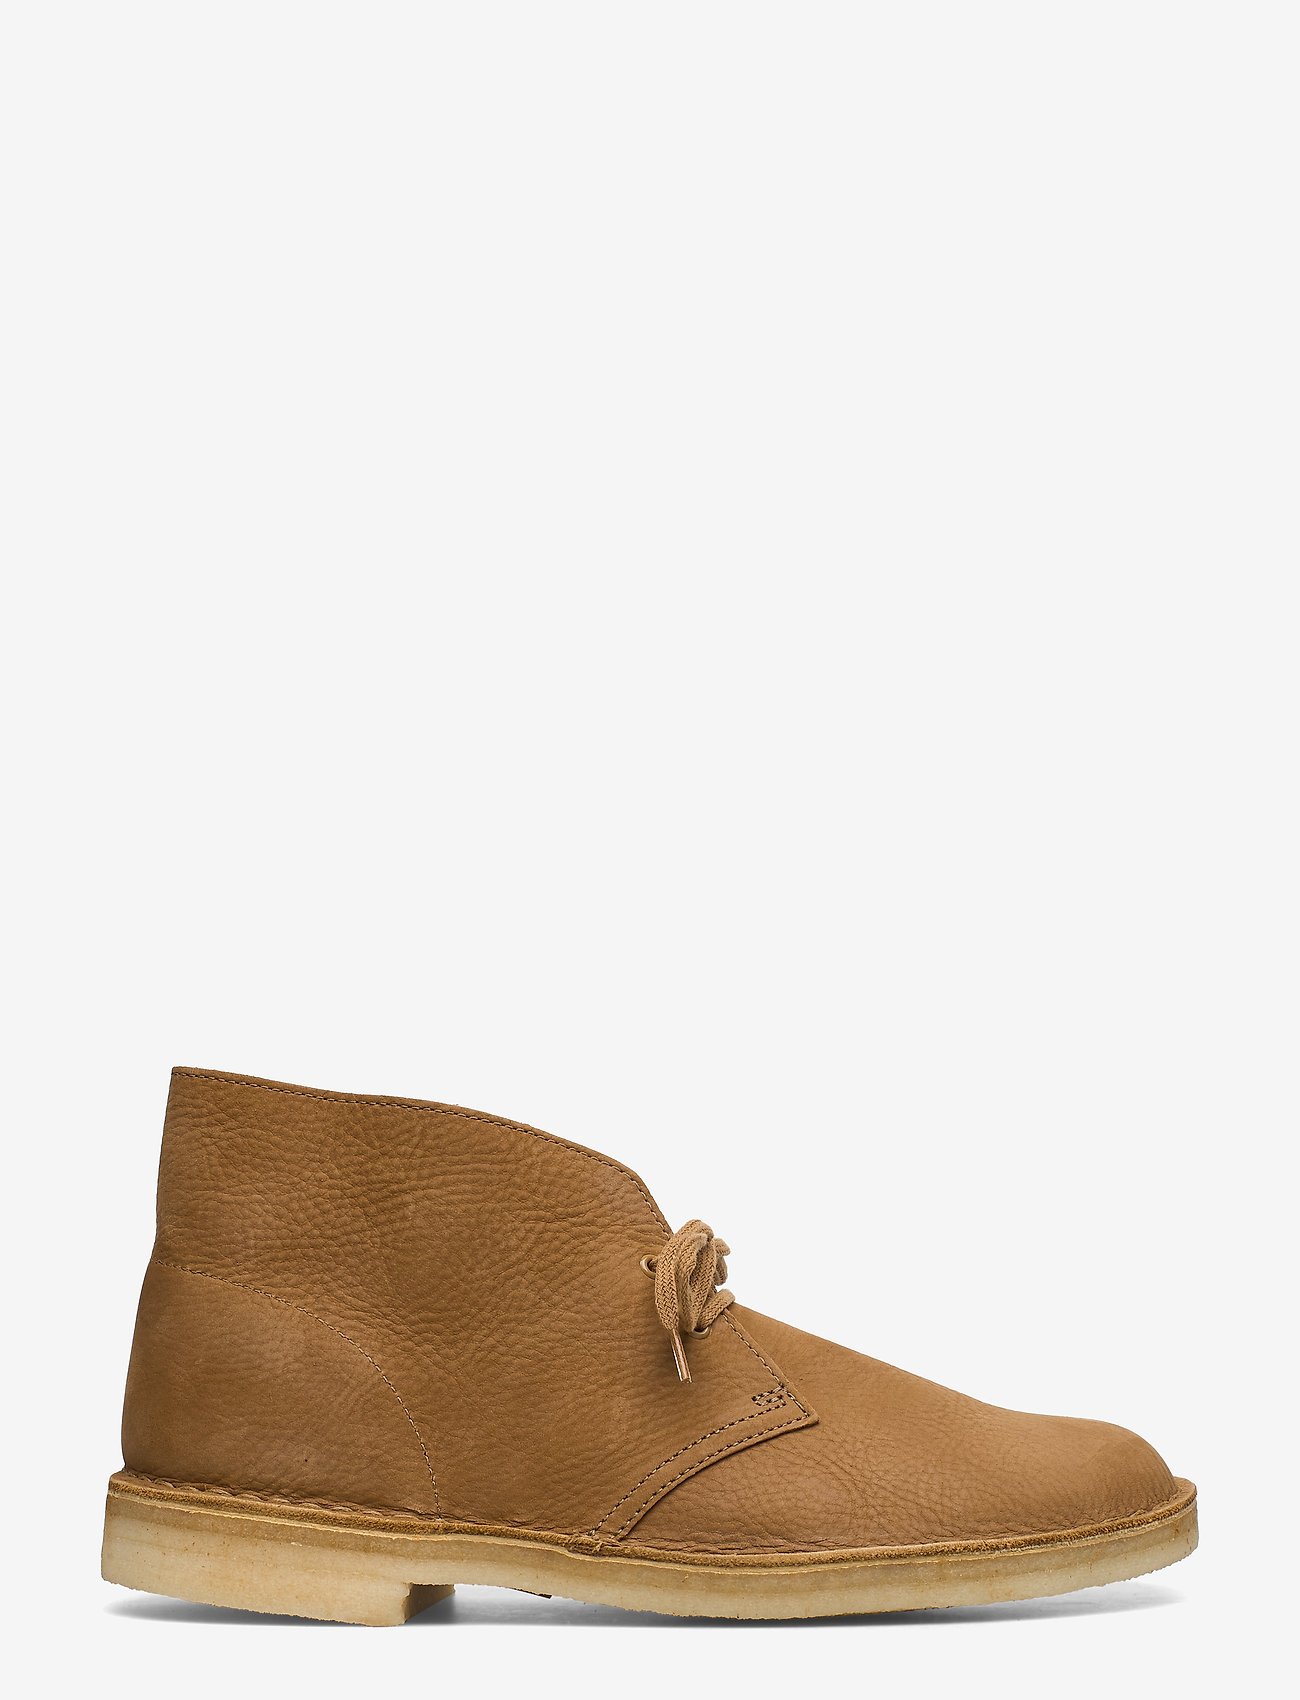 Desert Boot (Oak Nubuck) - Clarks Originals DpREMX